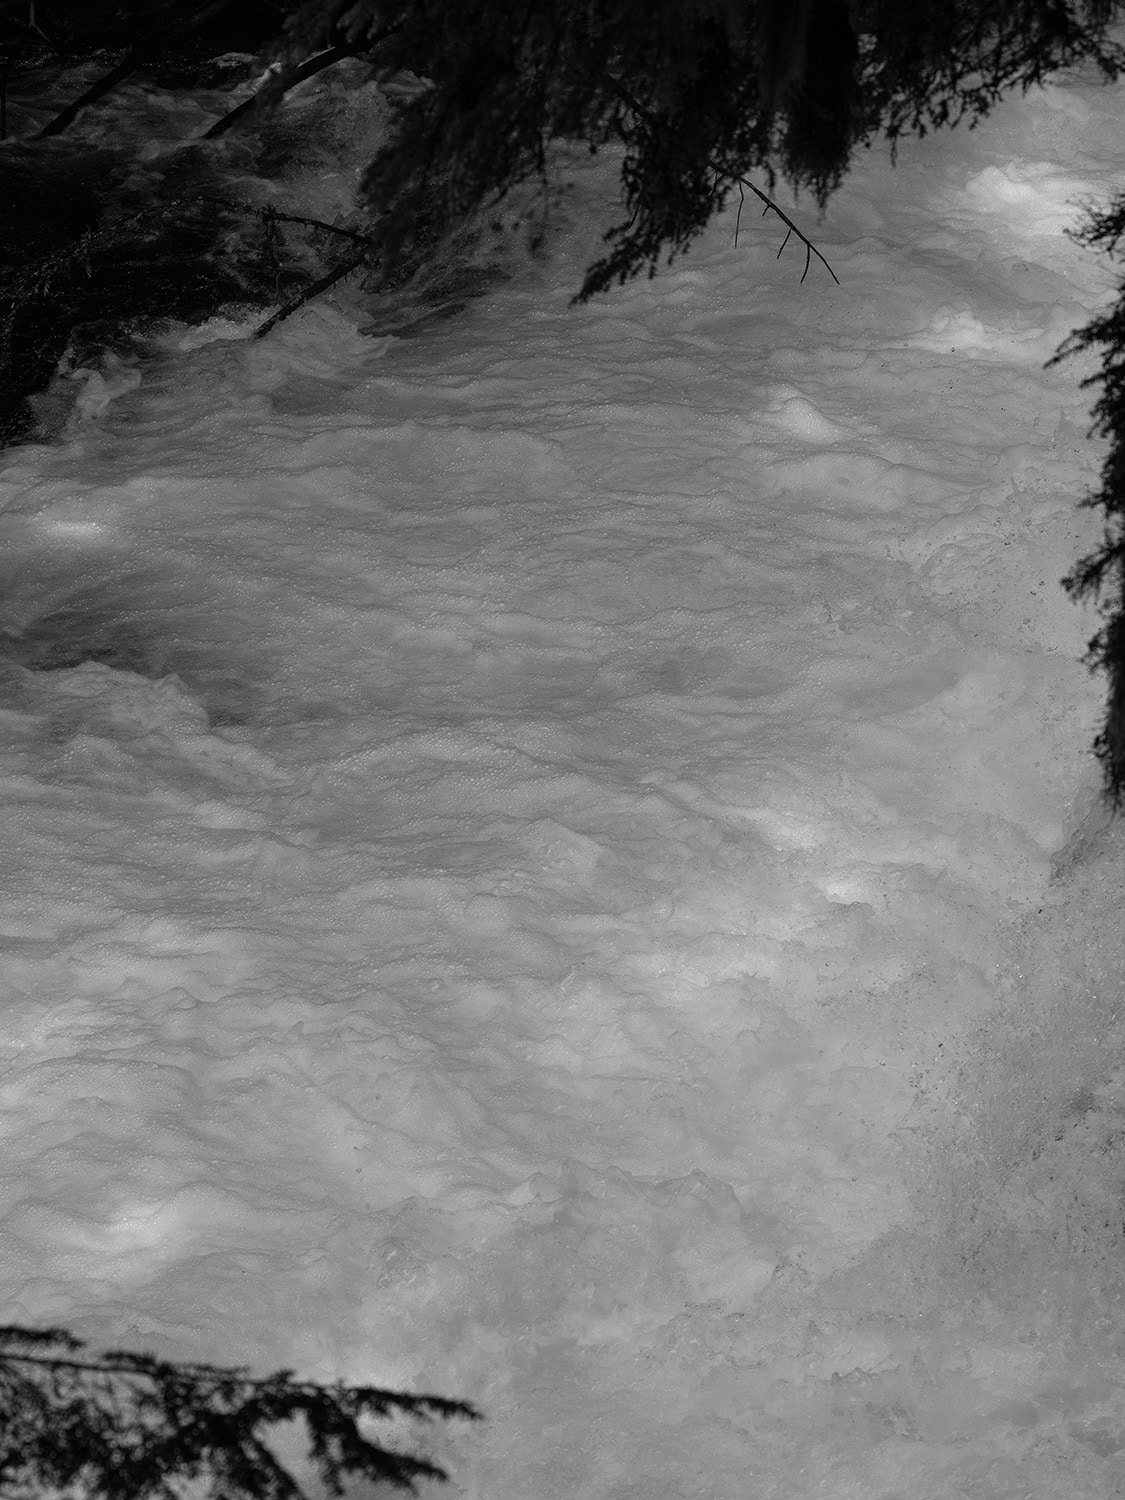 jude_river_aeration_42x31.5